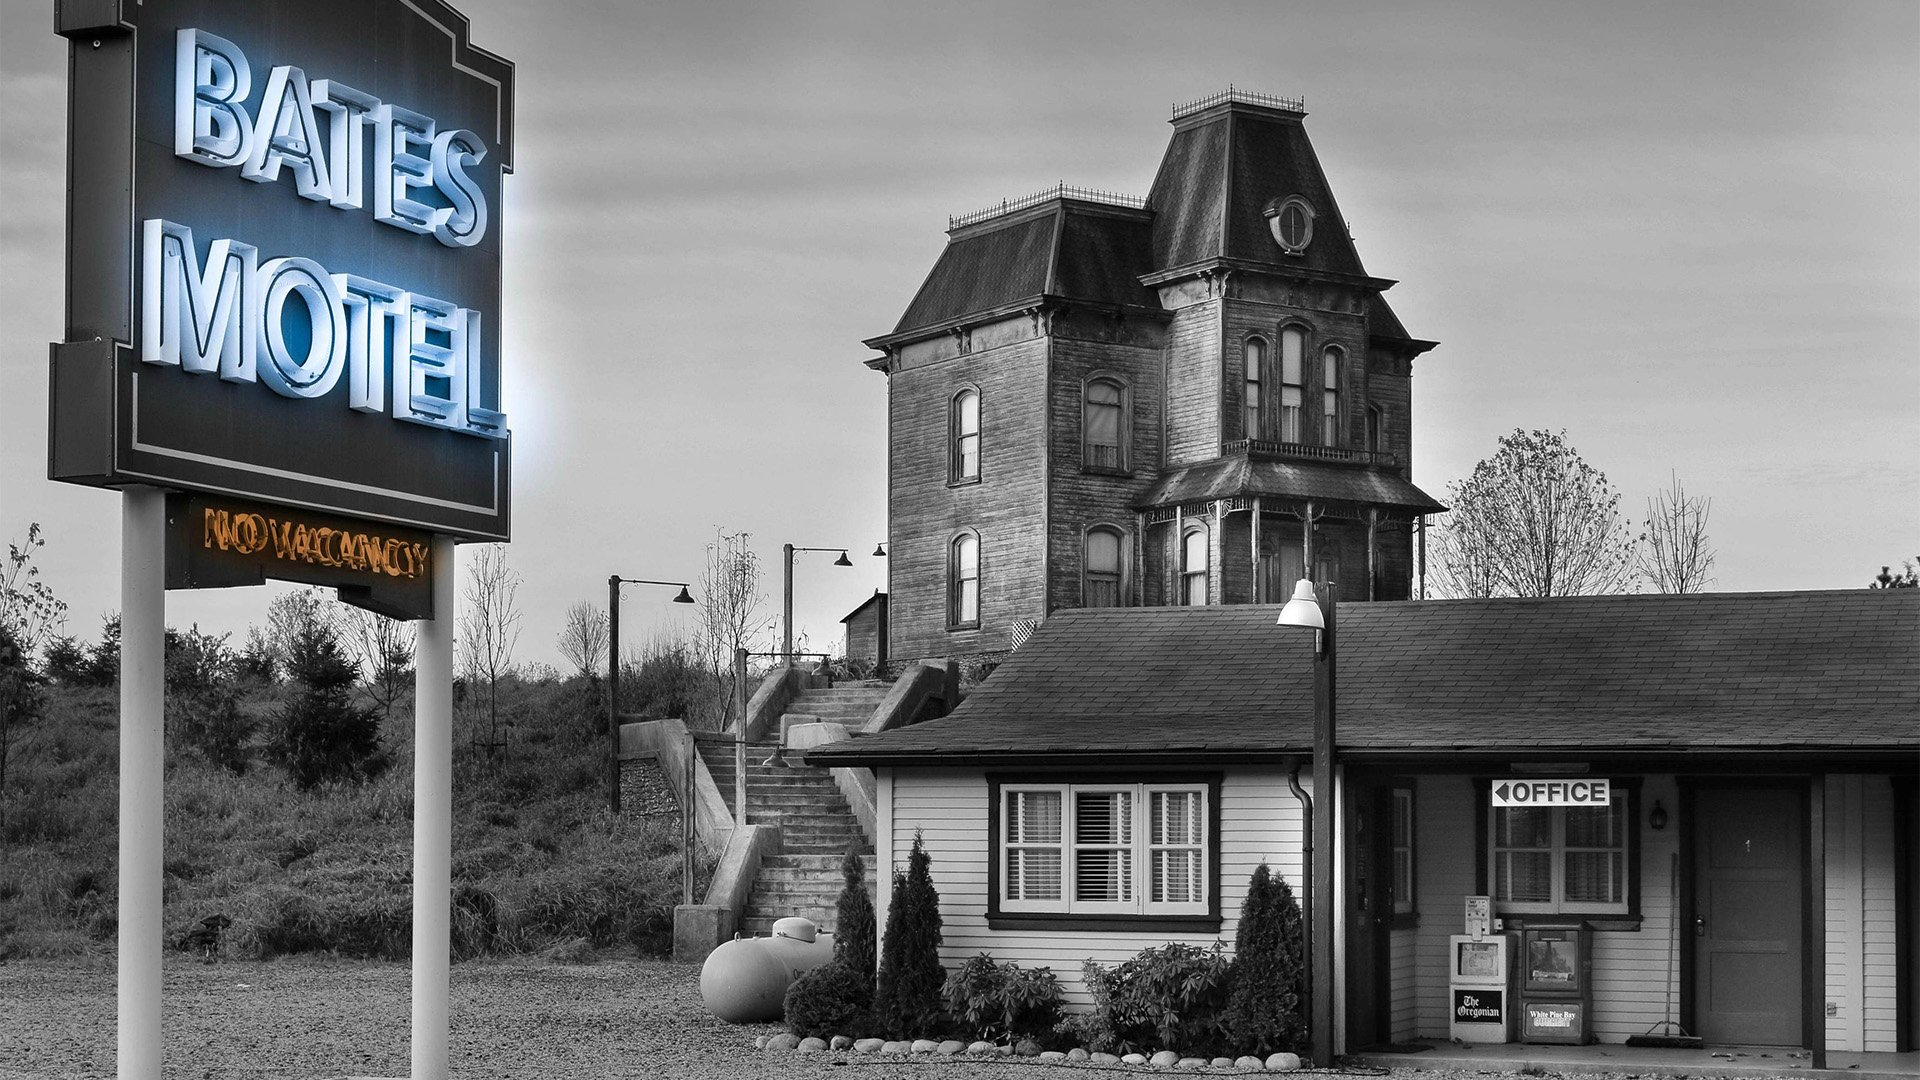 Bates Motel Full HD Wallpaper and Background Image ...